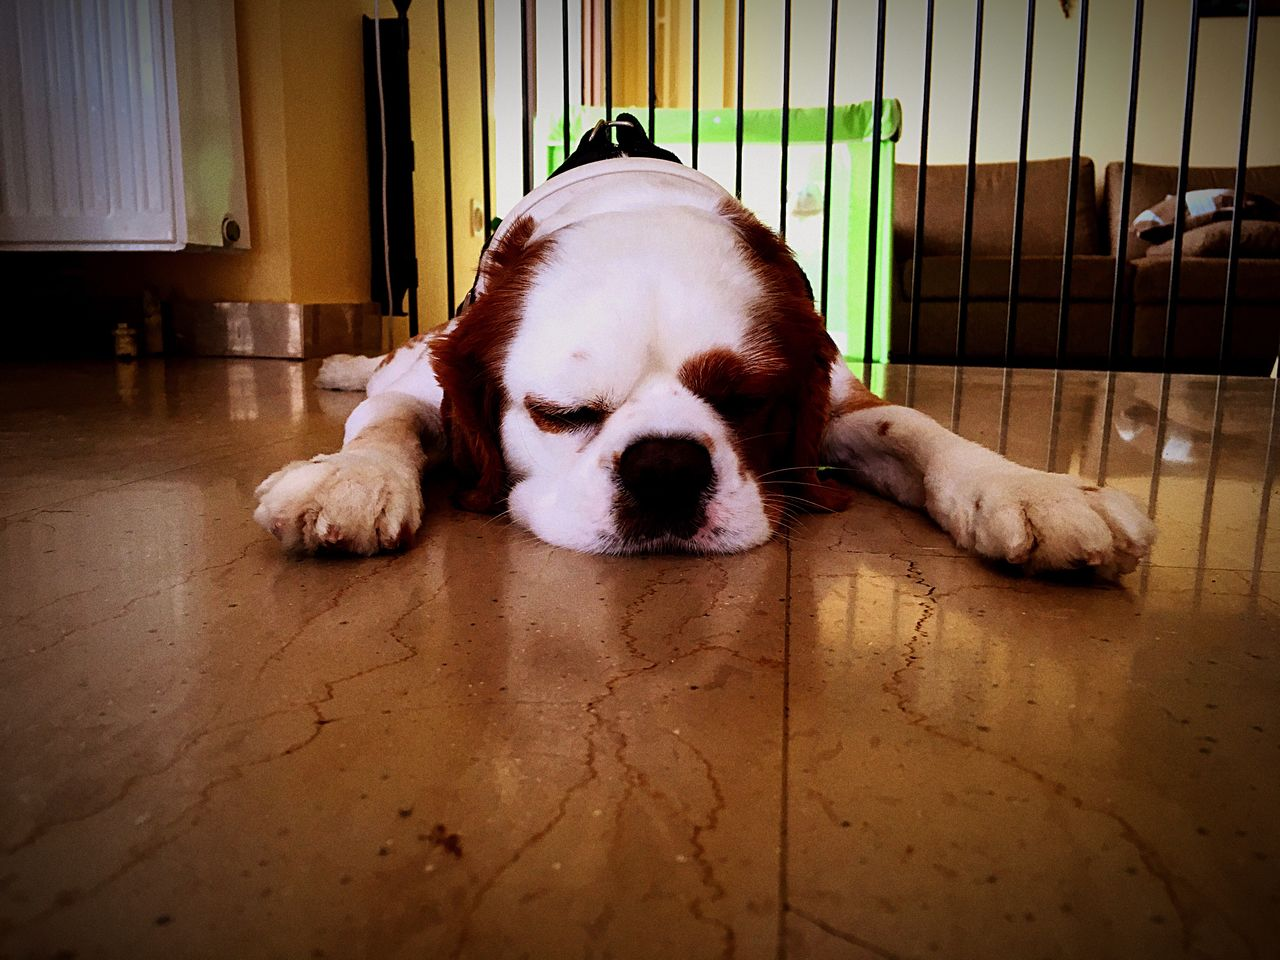 Close-Up Of Puppy Lying On Floor